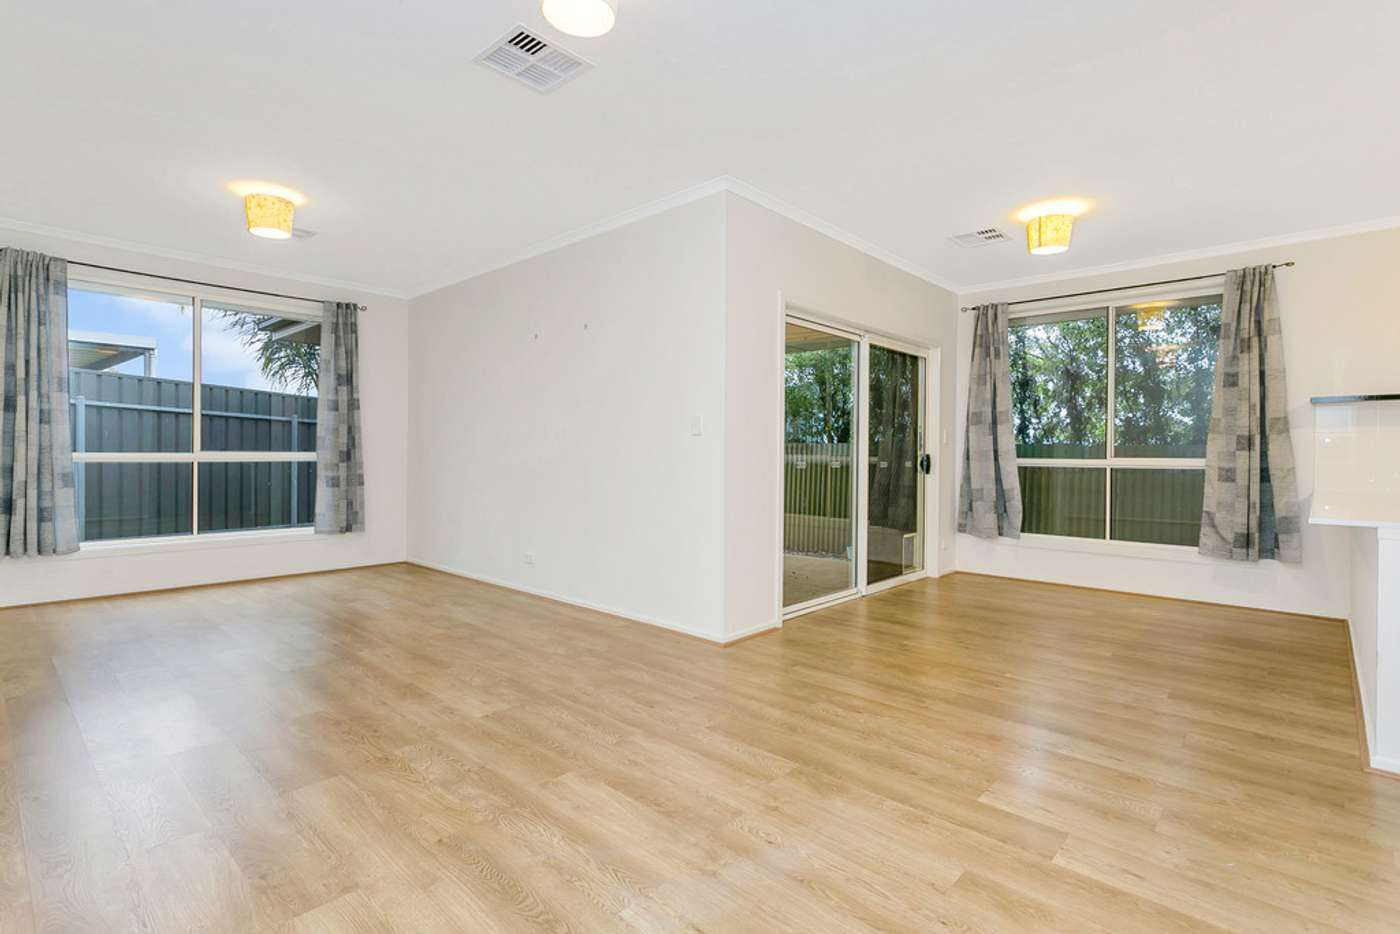 Fifth view of Homely house listing, 13a Dalkeith Avenue, Morphett Vale SA 5162